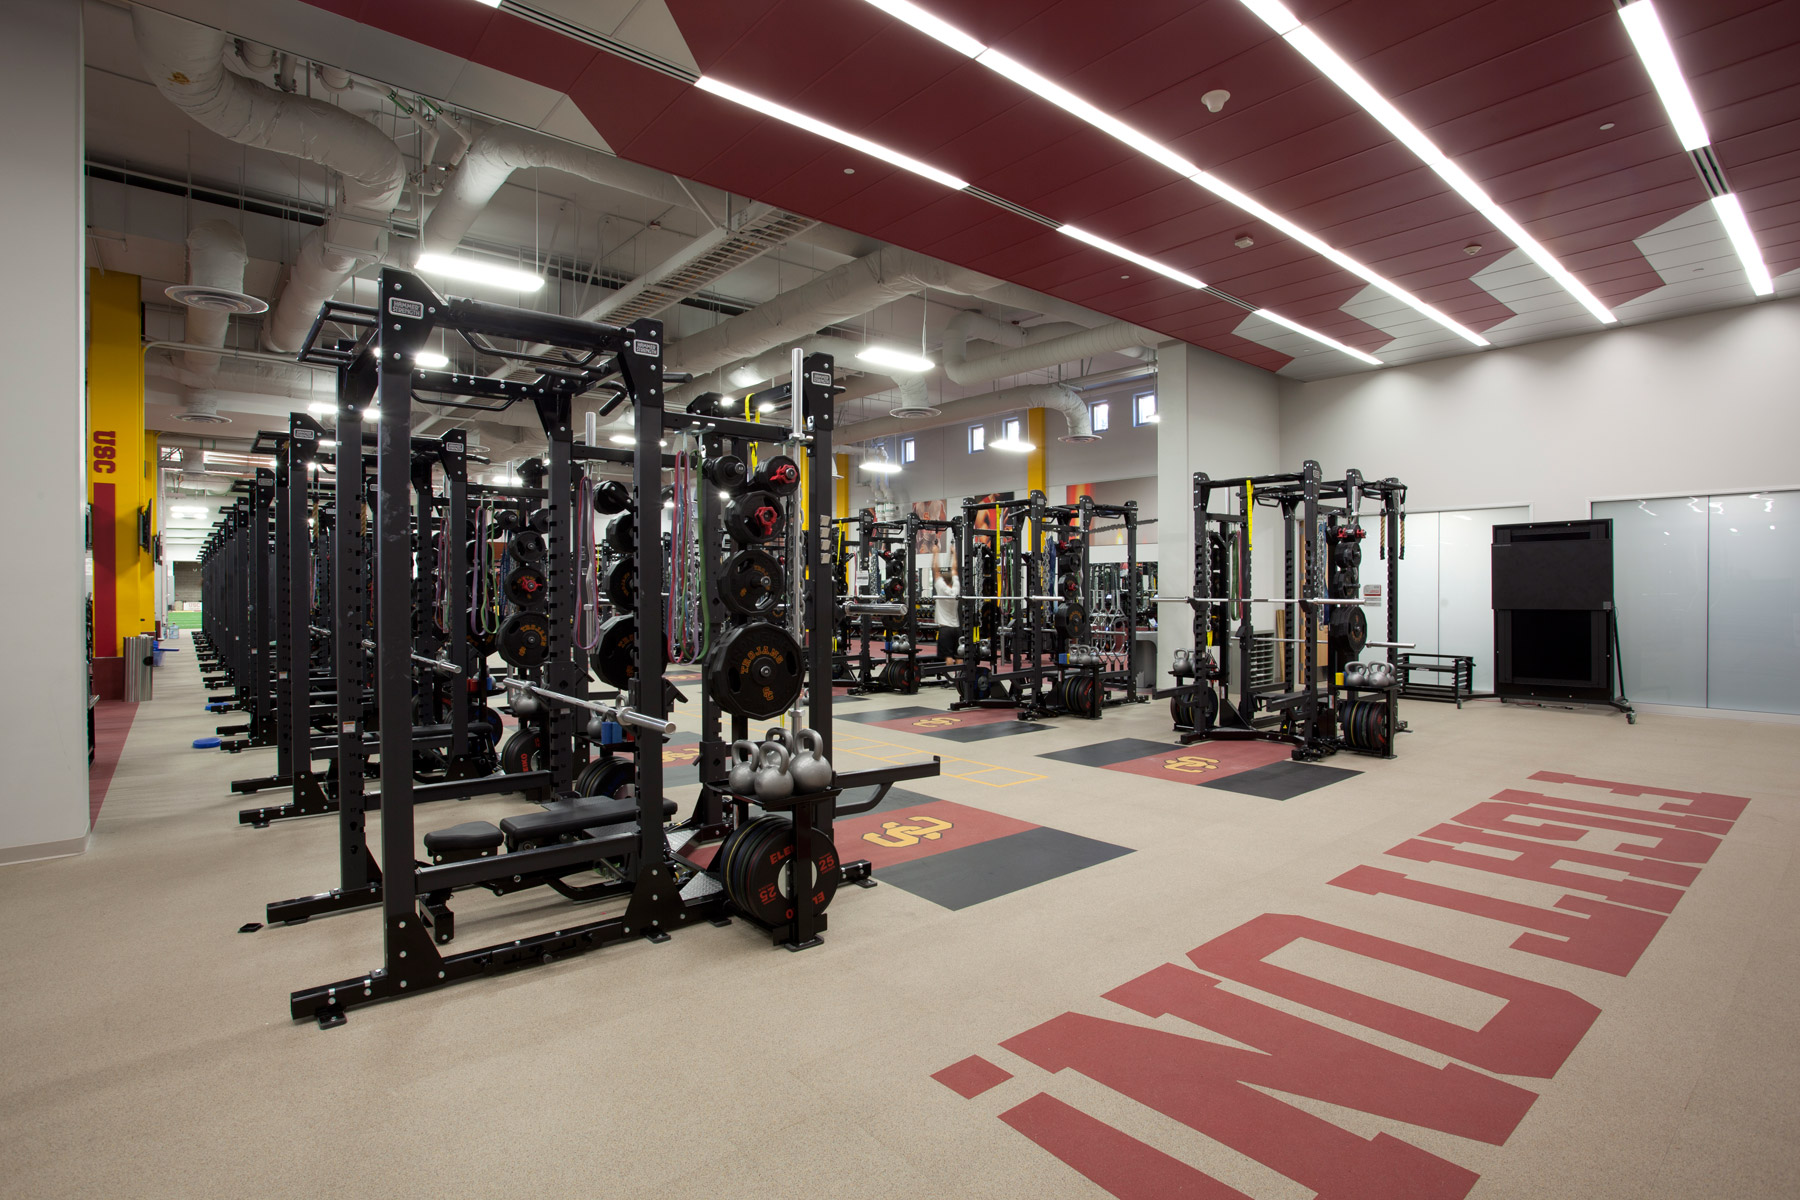 USC all sports building 08